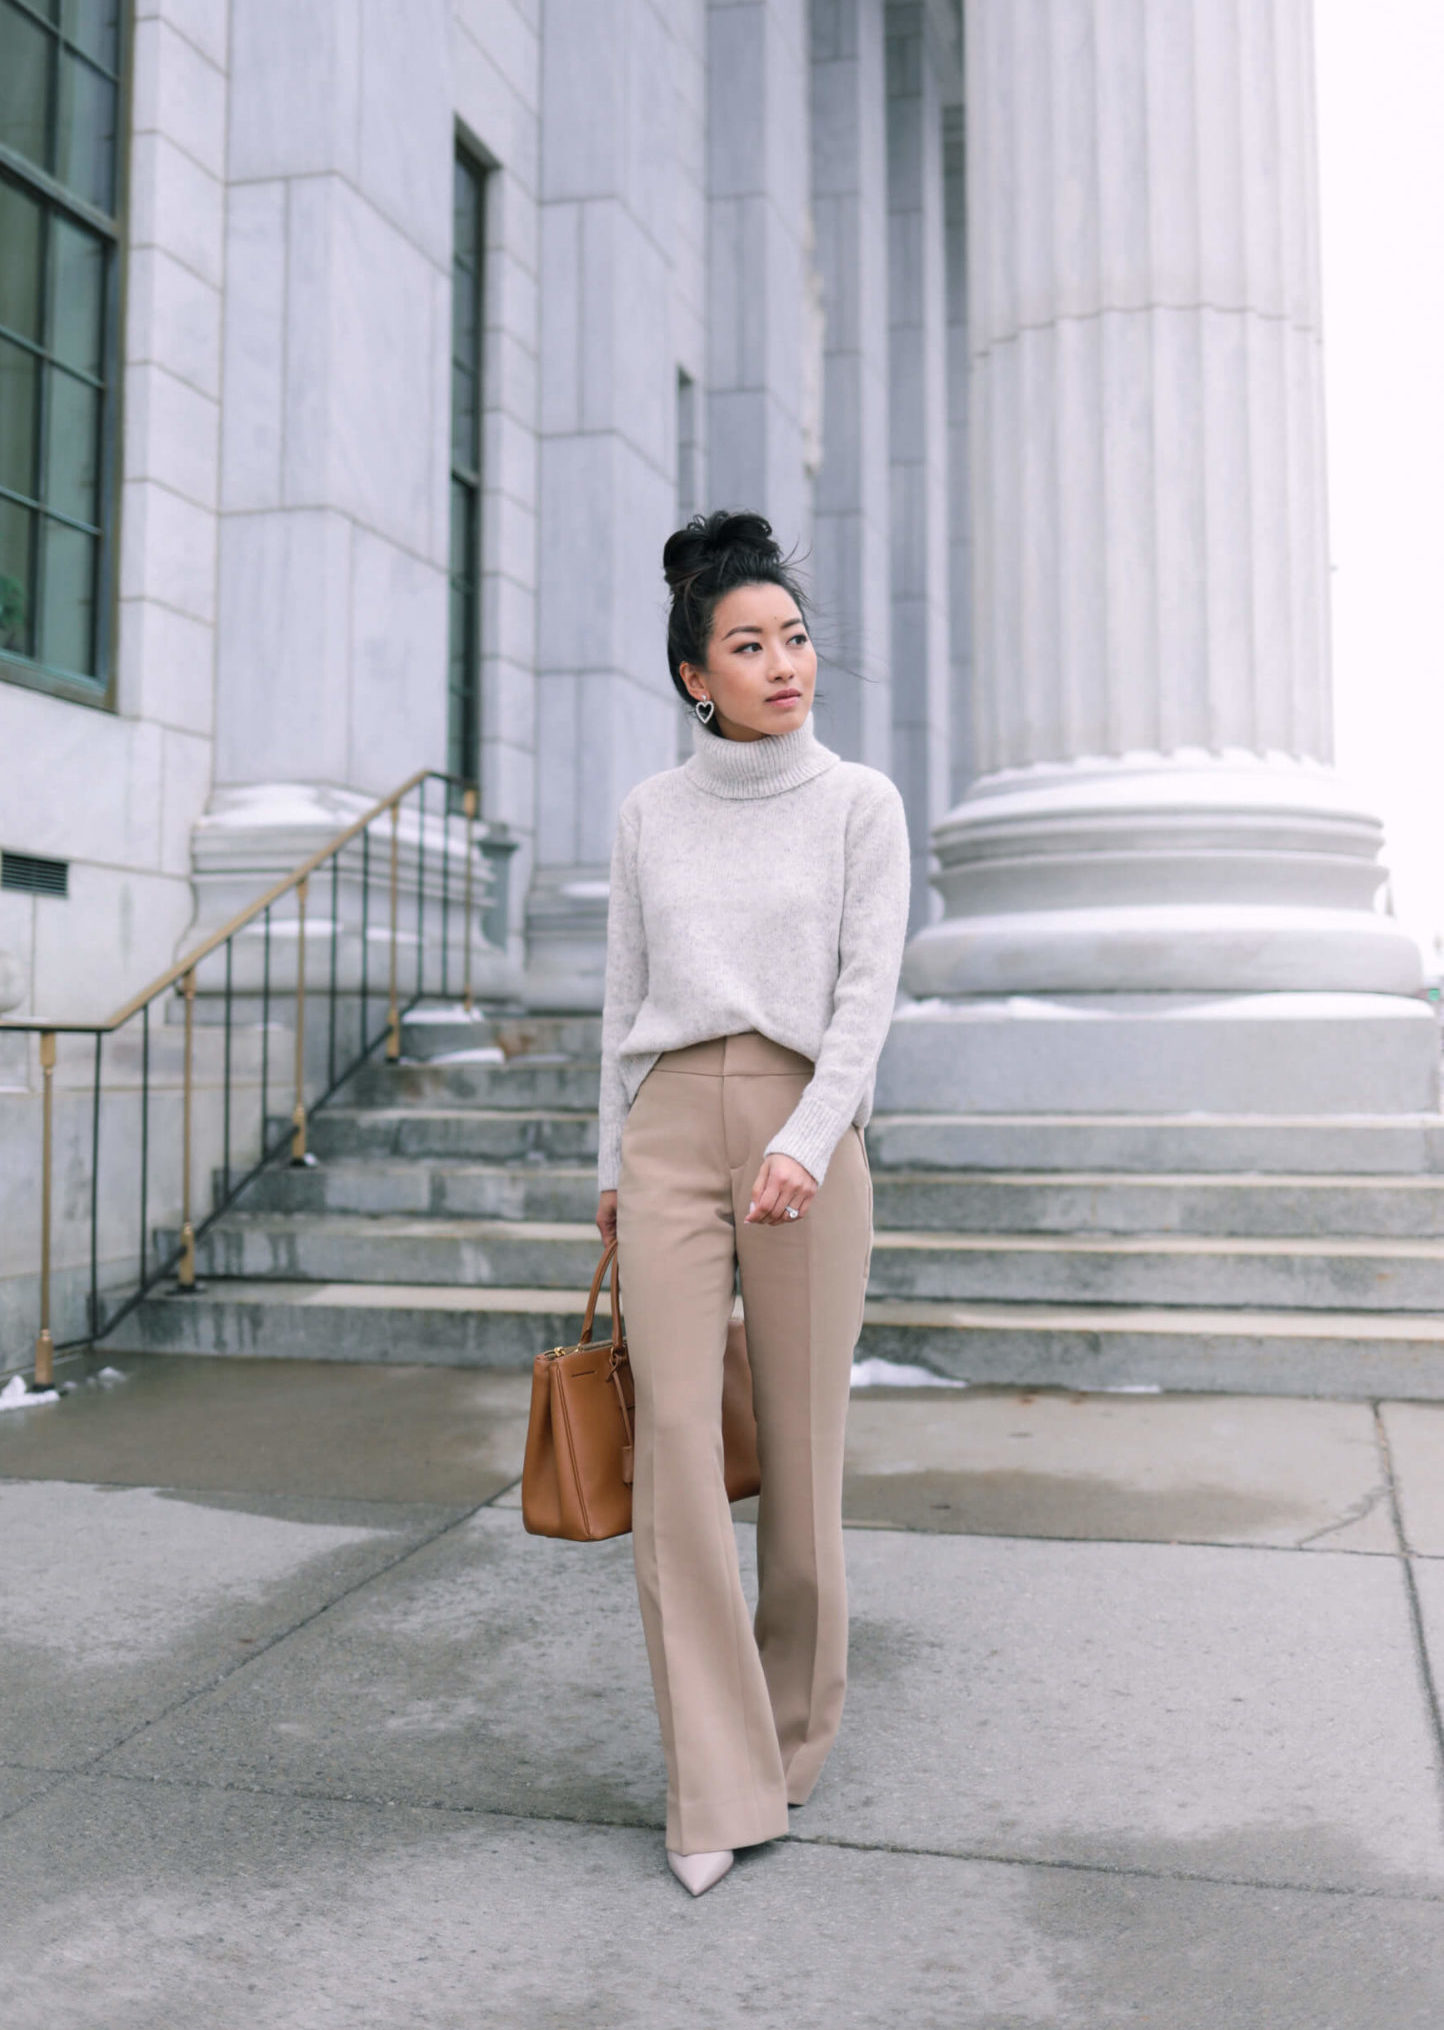 Timeless tan trousers + crossover drape top